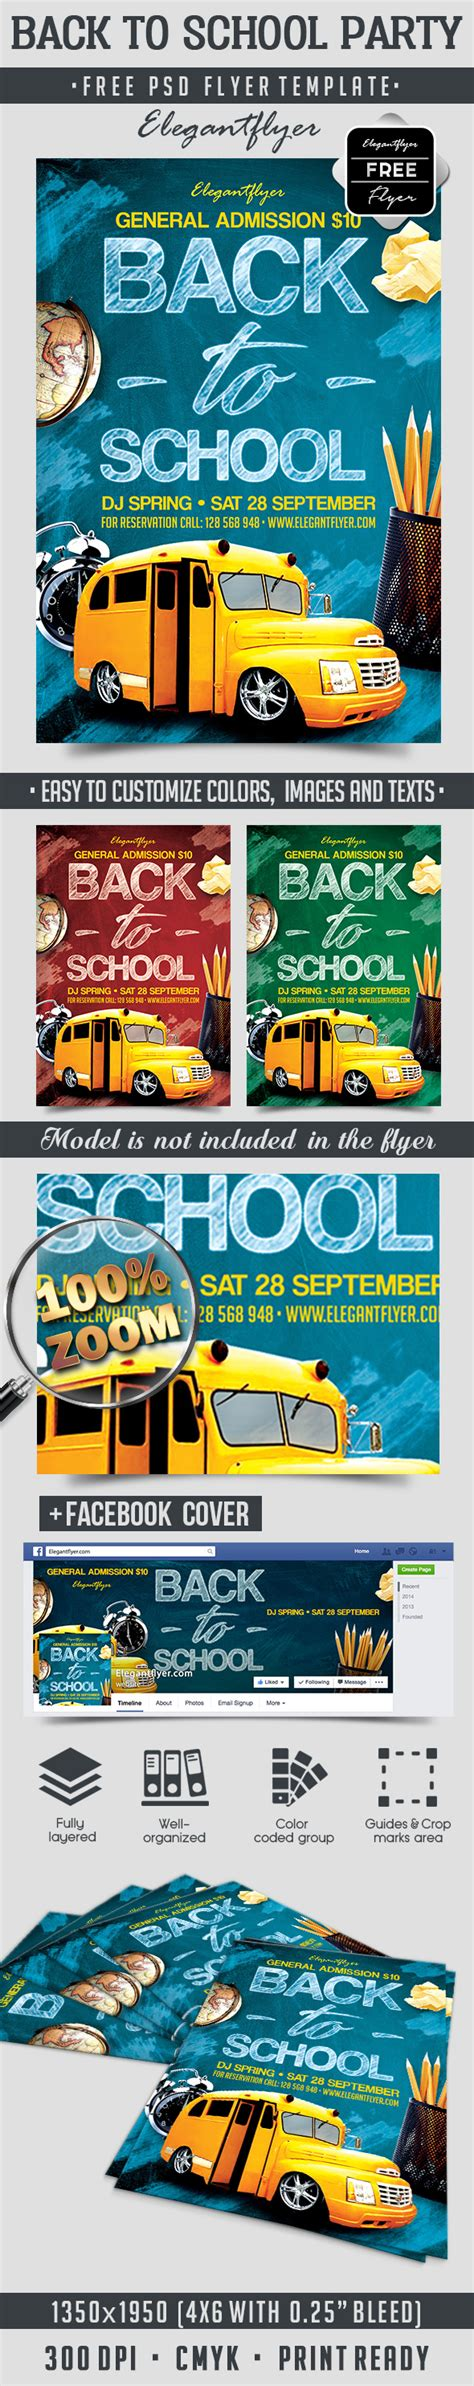 Back To School Party Free Flyer Psd Template By Elegantflyer Free School Flyer Templates